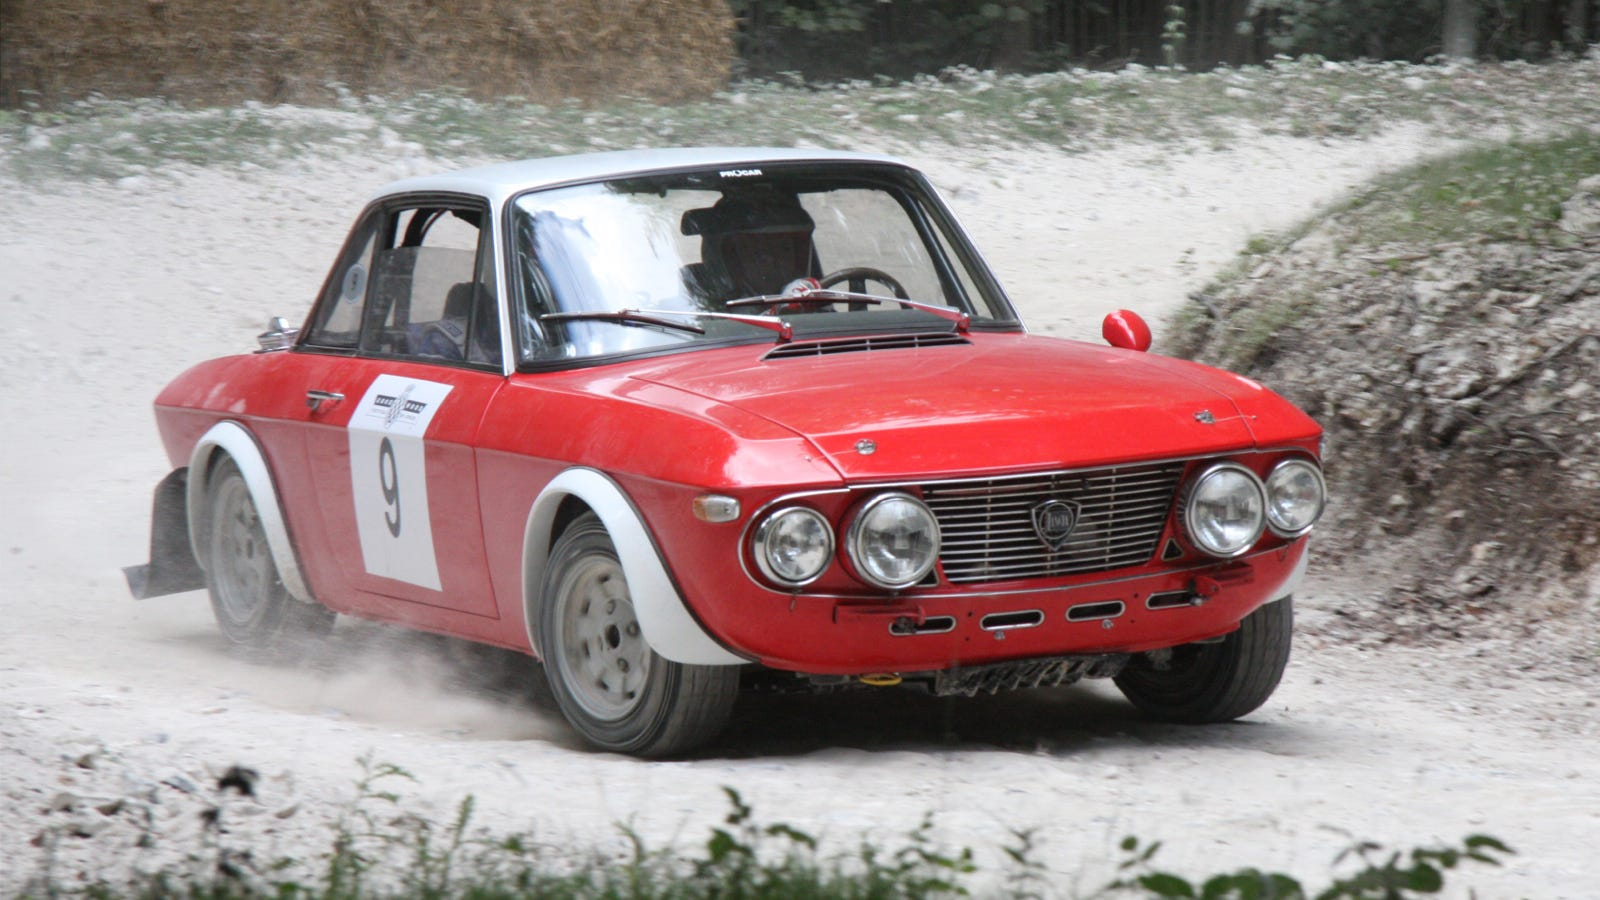 Your Ridiculously Awesome Rally Lancia Fulvia Wallpaper Is ...